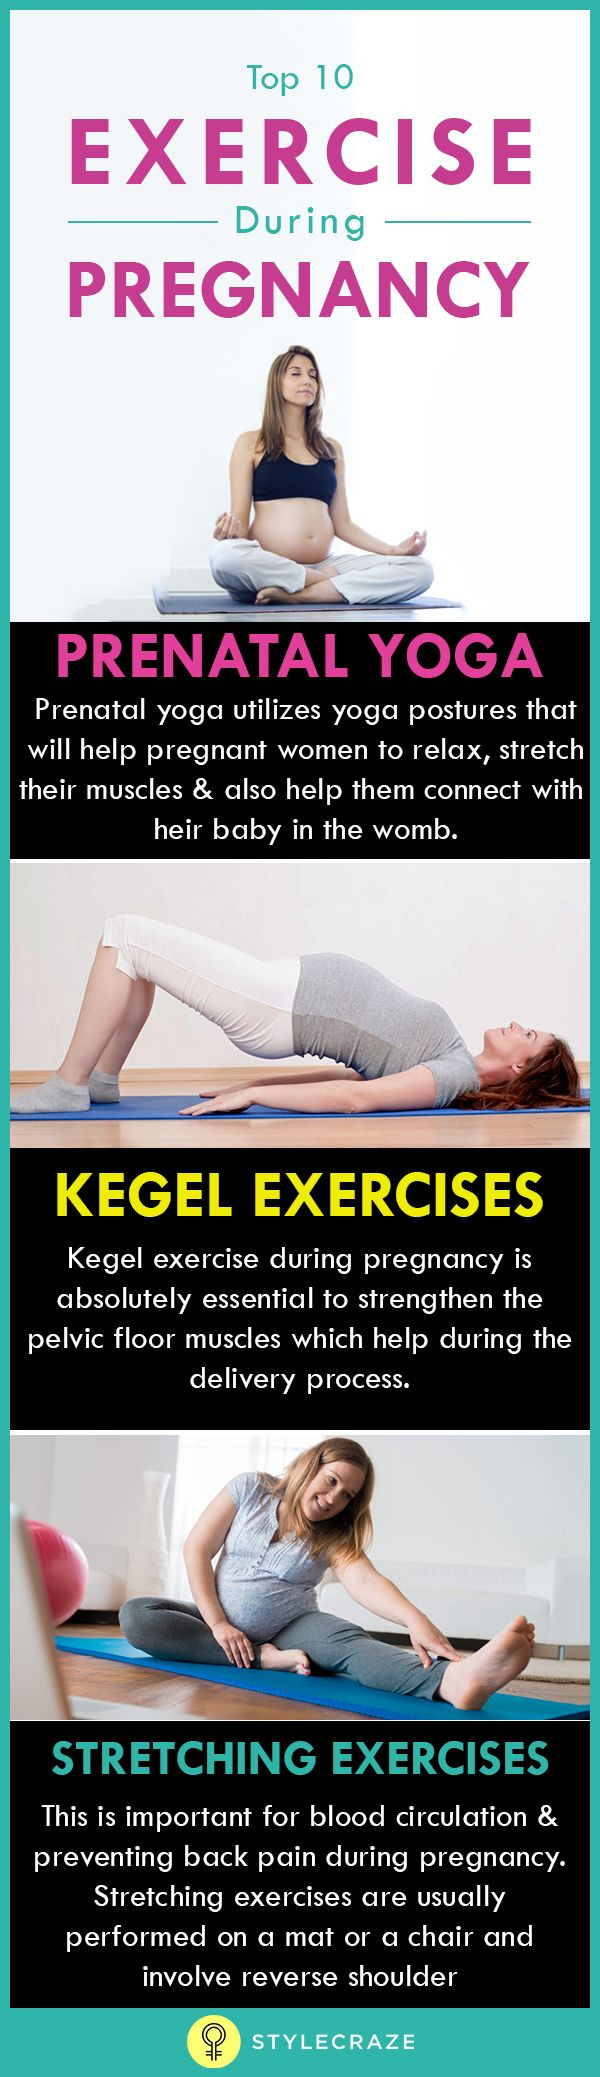 Pilates Are Generally Performed By Women During Their Second Trimester Therefore This Form Of Exercise Is Not Strenuous At All